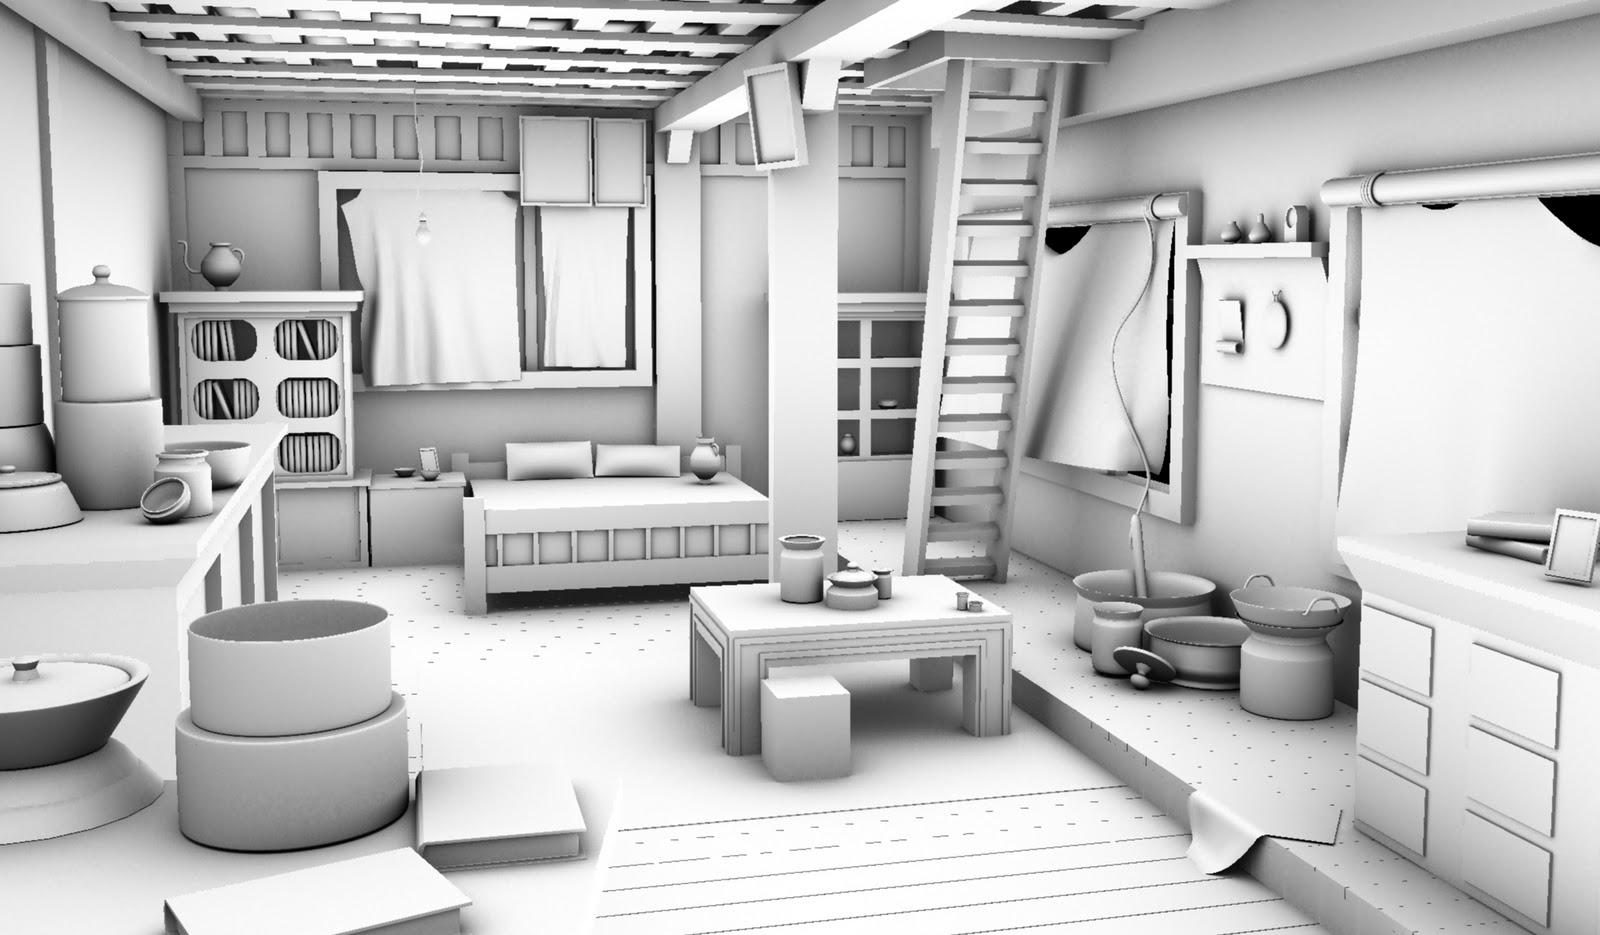 uncharted 2 hut interior high resolution modelling ambient occlusion